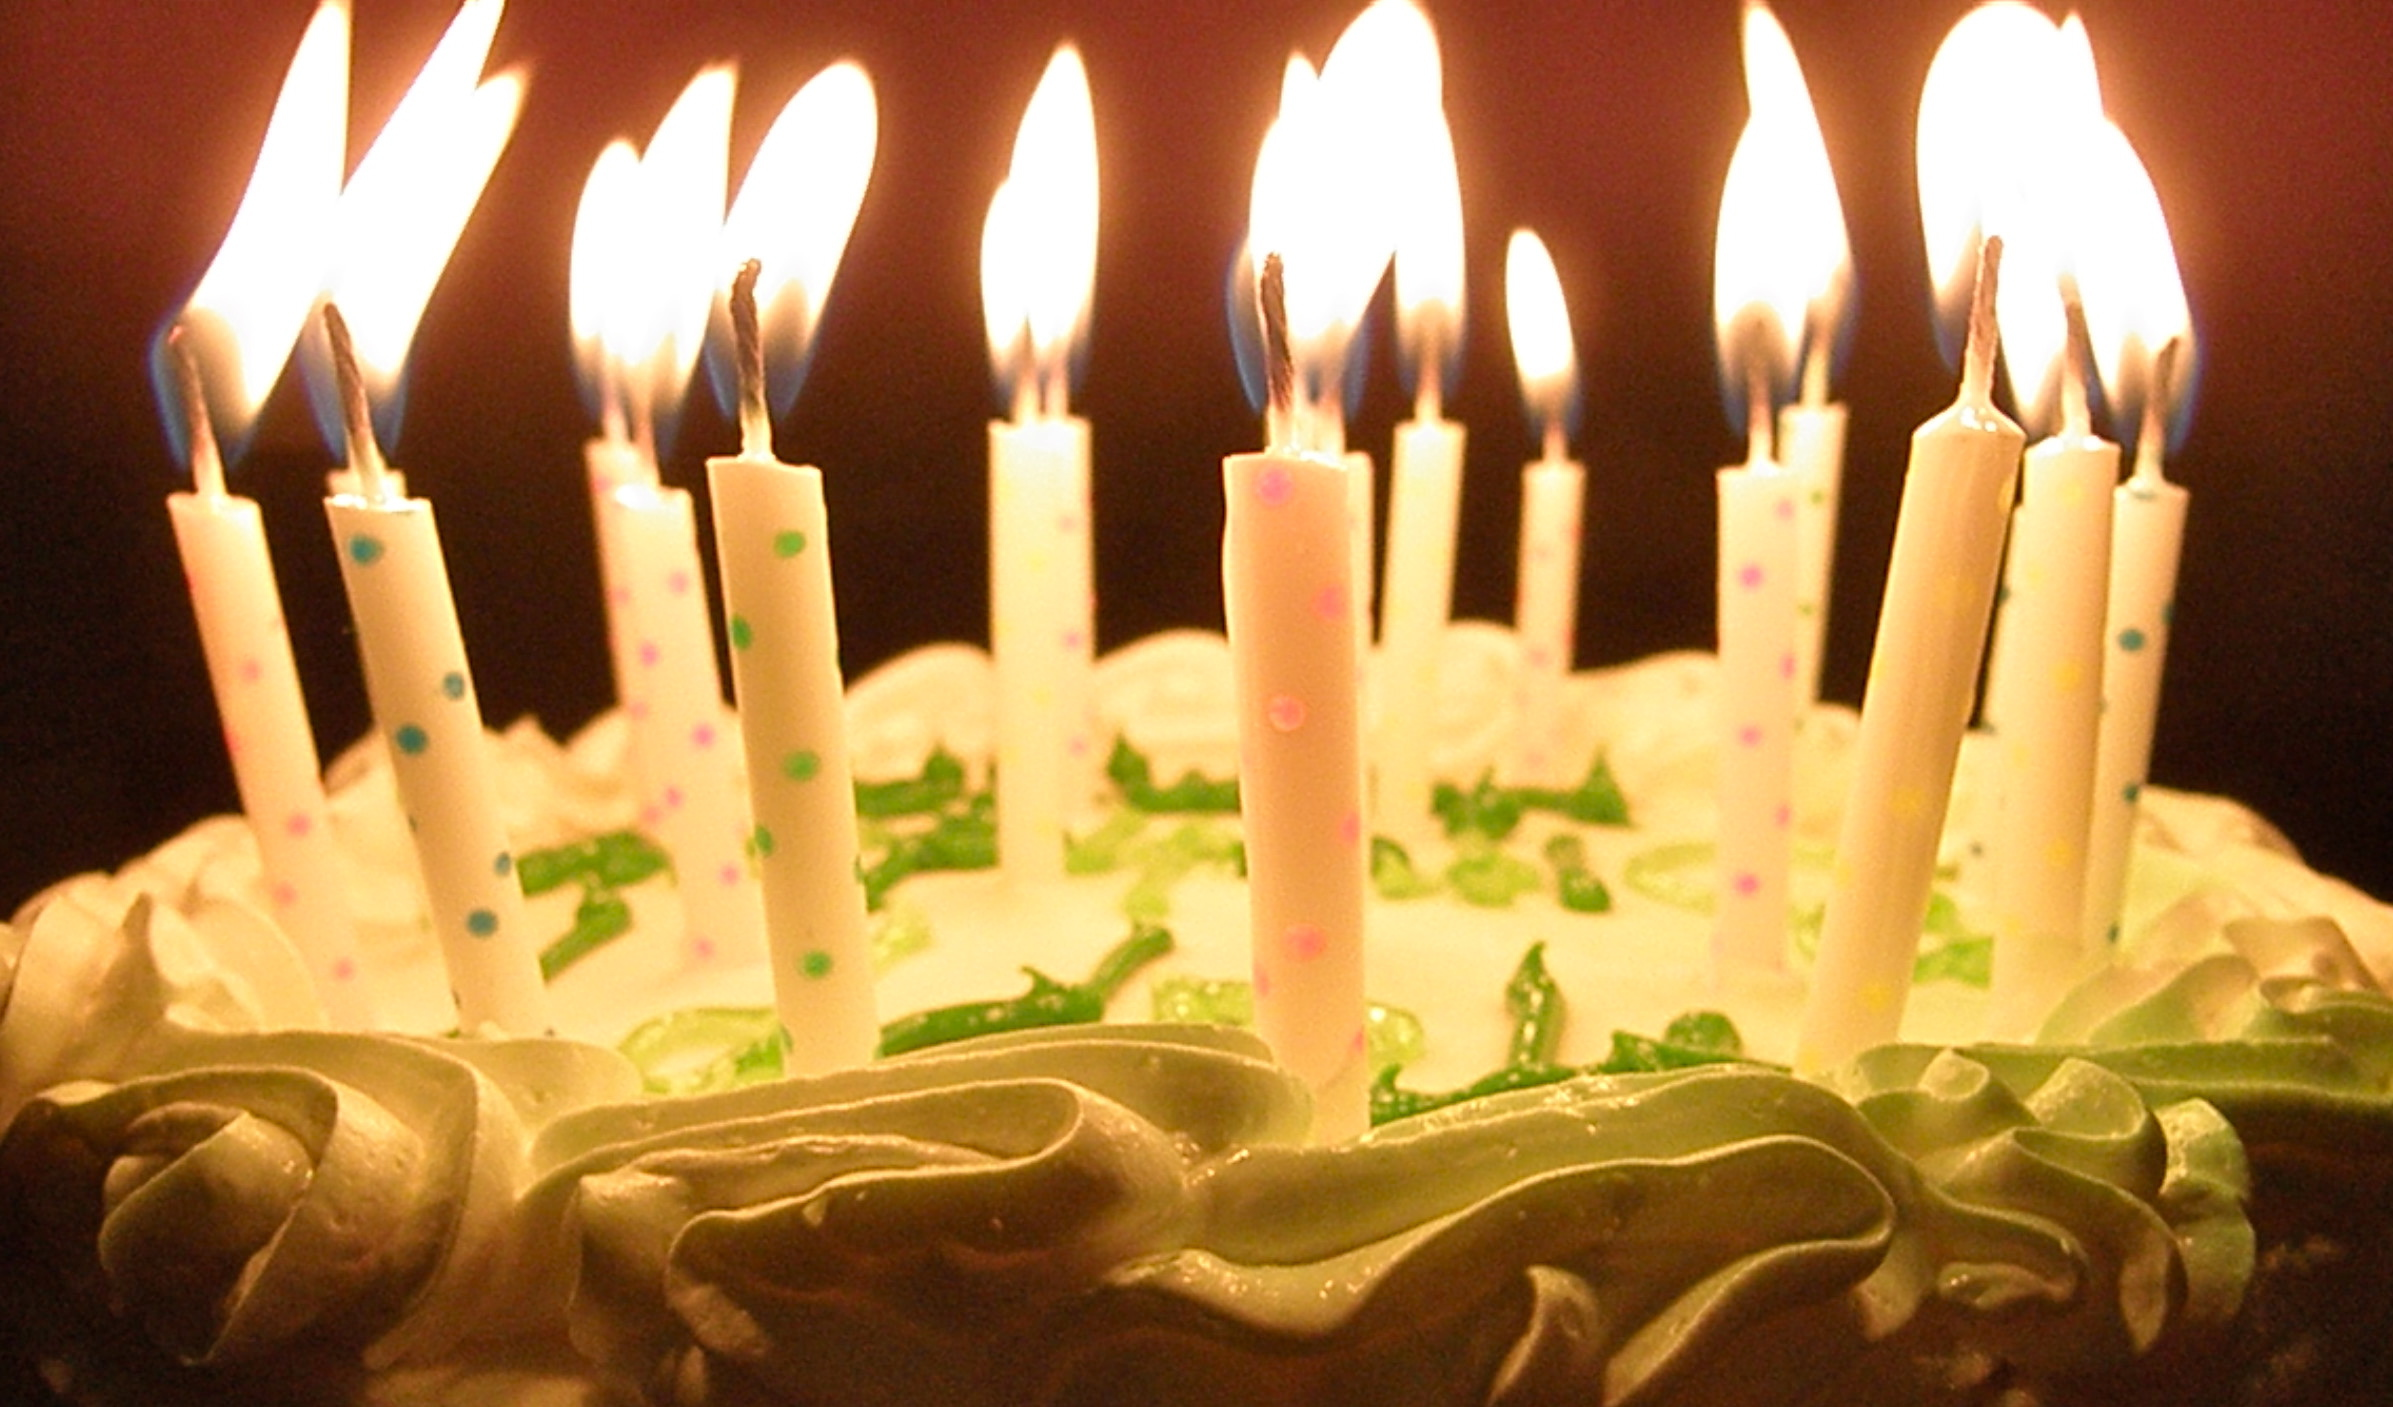 picture of birthday cake with burning candles ; Holidays___Birthday_Burning_candles_in_a_cake_for_birthday_051795_